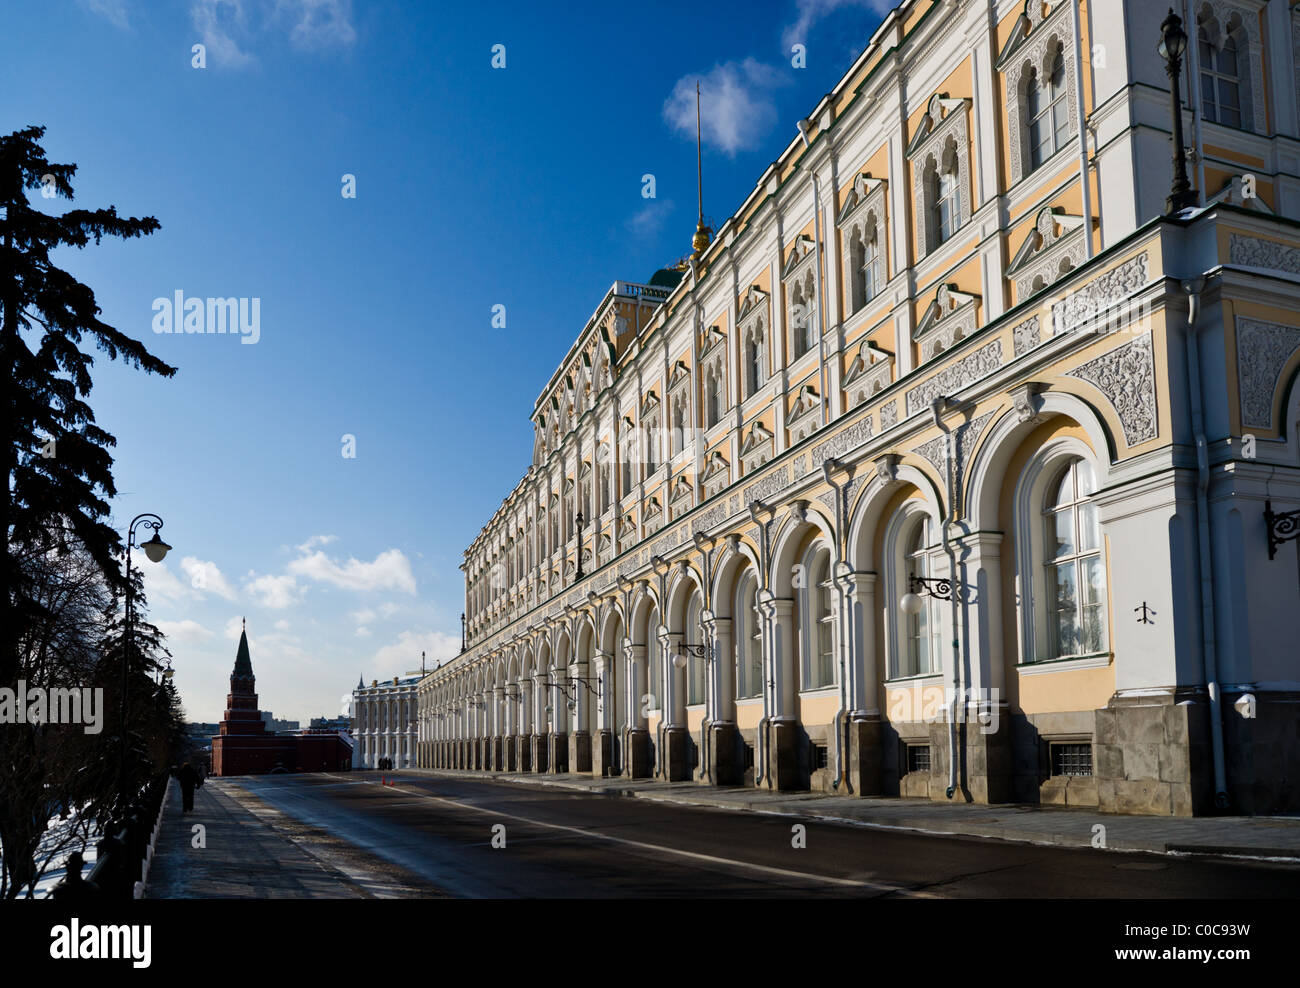 Grand Kremlin Palace. Nowadays it is a residence of president of Russia. - Stock Image